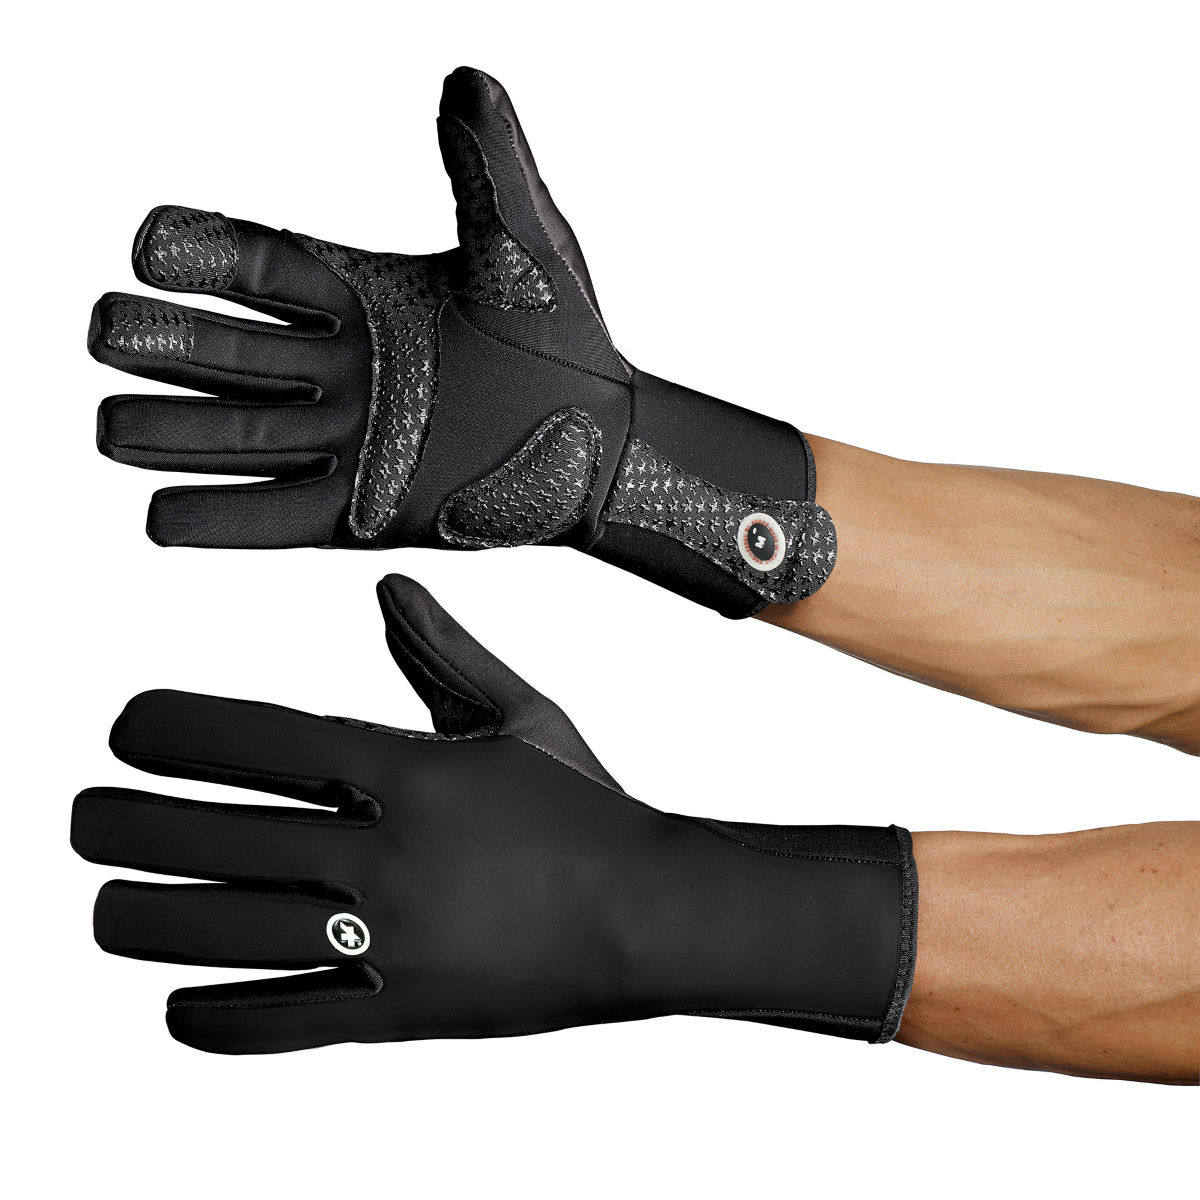 Gants Assos earlyWinter s7 - Extra Small Black Volkanga